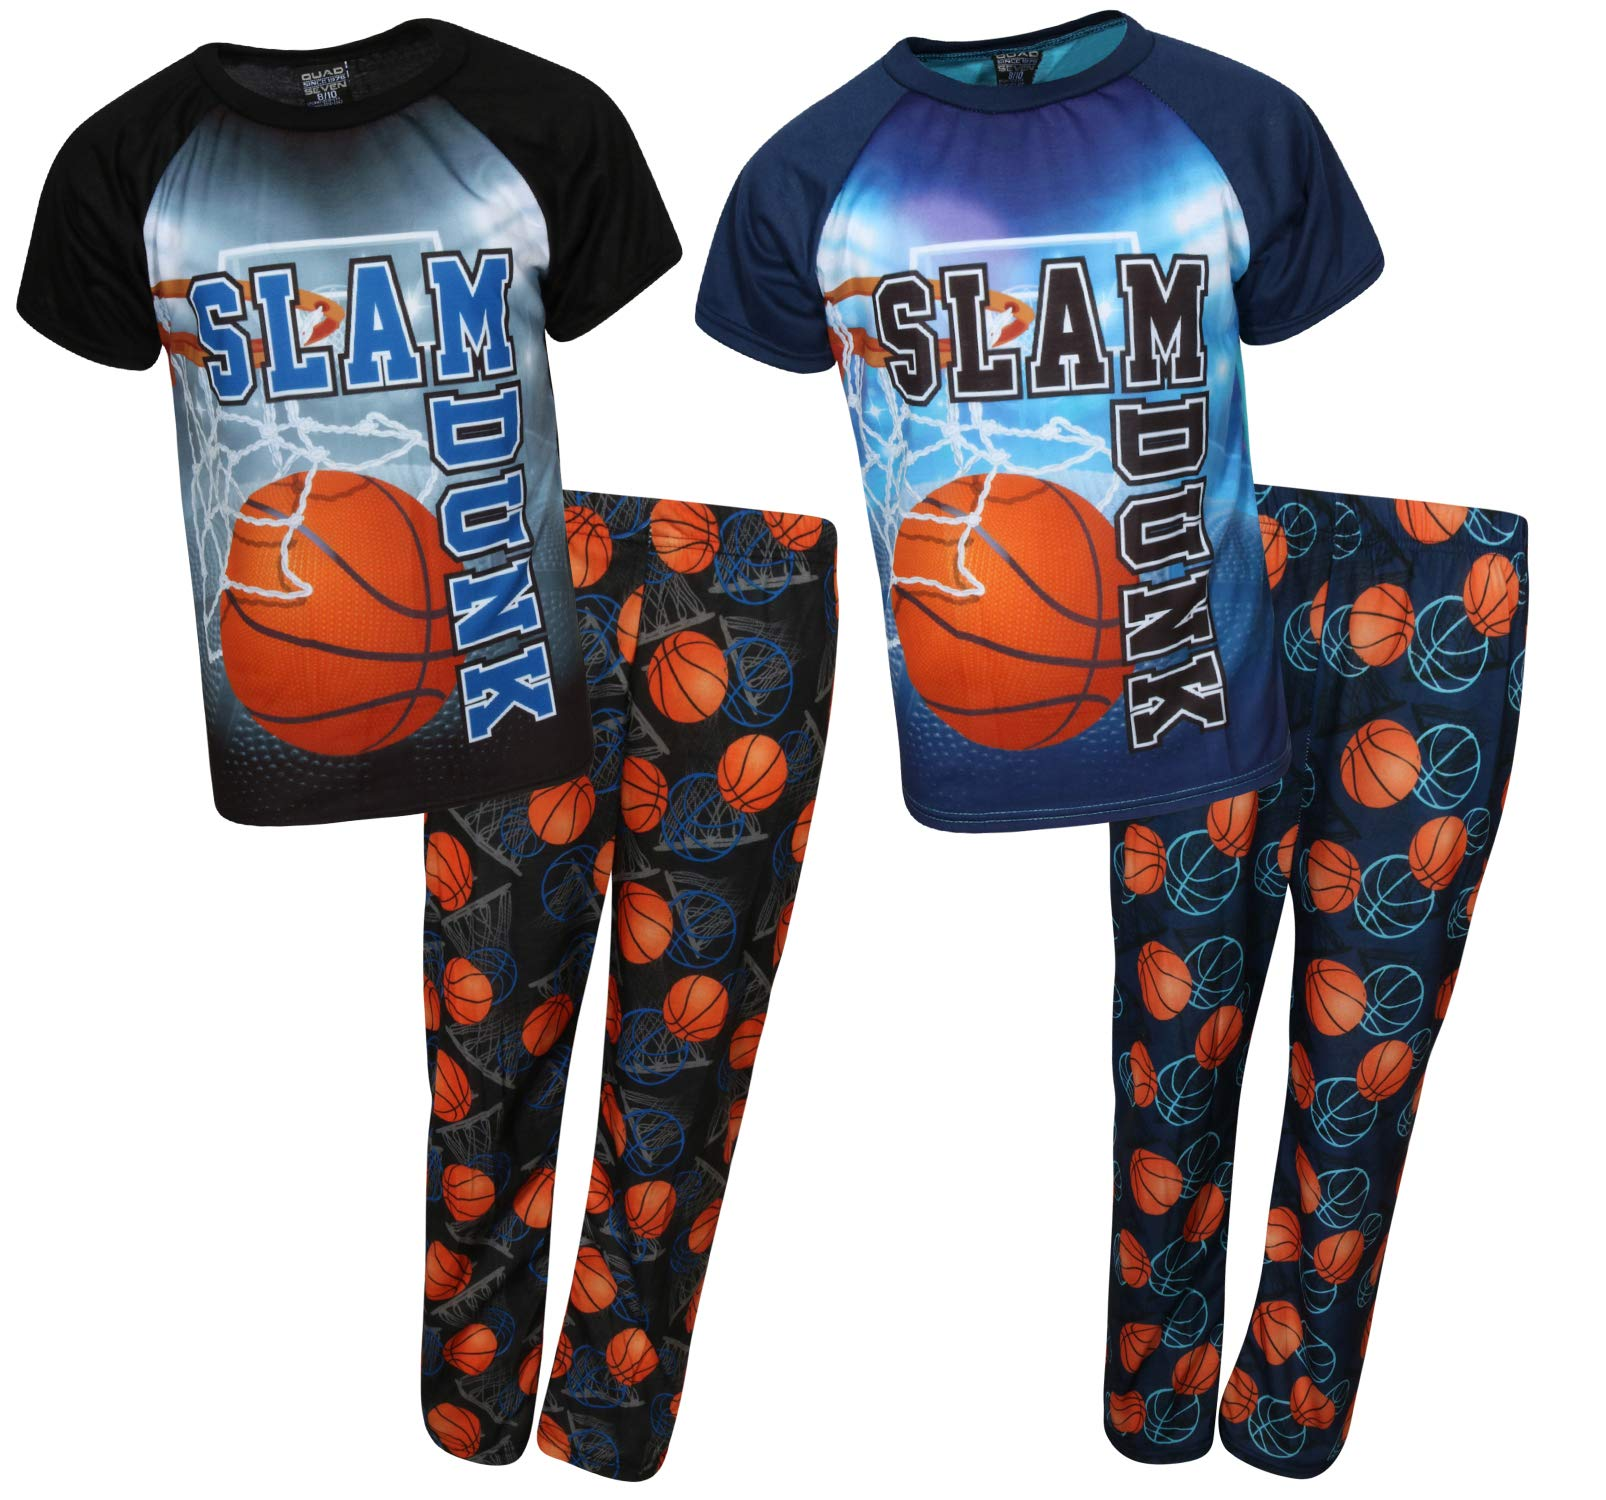 Quad Seven Boys 4-Piece Graphic Sublimation Pajama Set - Large Fun Print Tops and Matching Pants, Slam Dunk, Size 12/14'